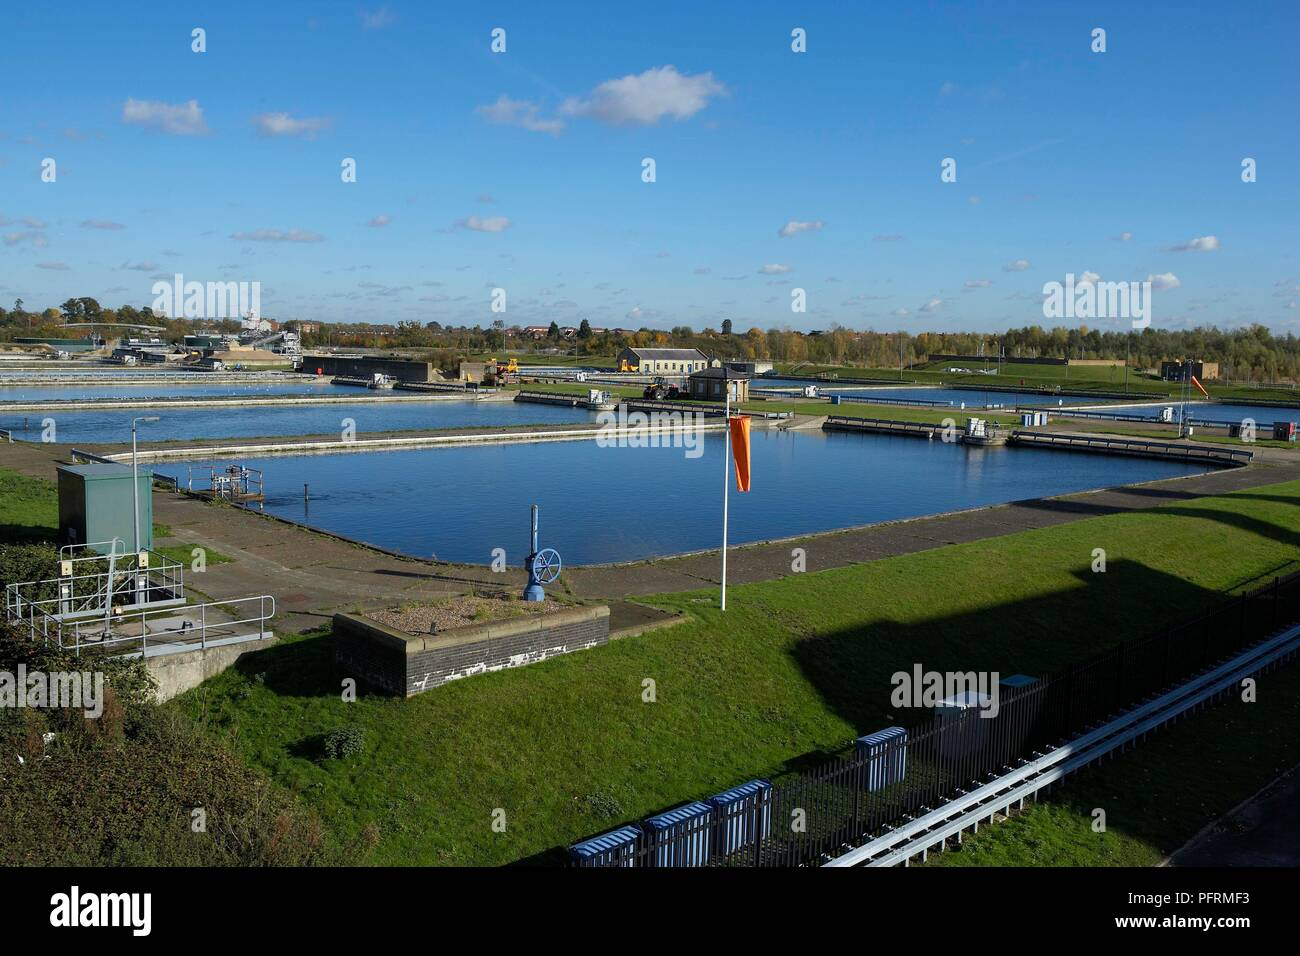 Great Britain, England, Middlesex, reservoirs at Kempton Park Pumping Station Stock Photo